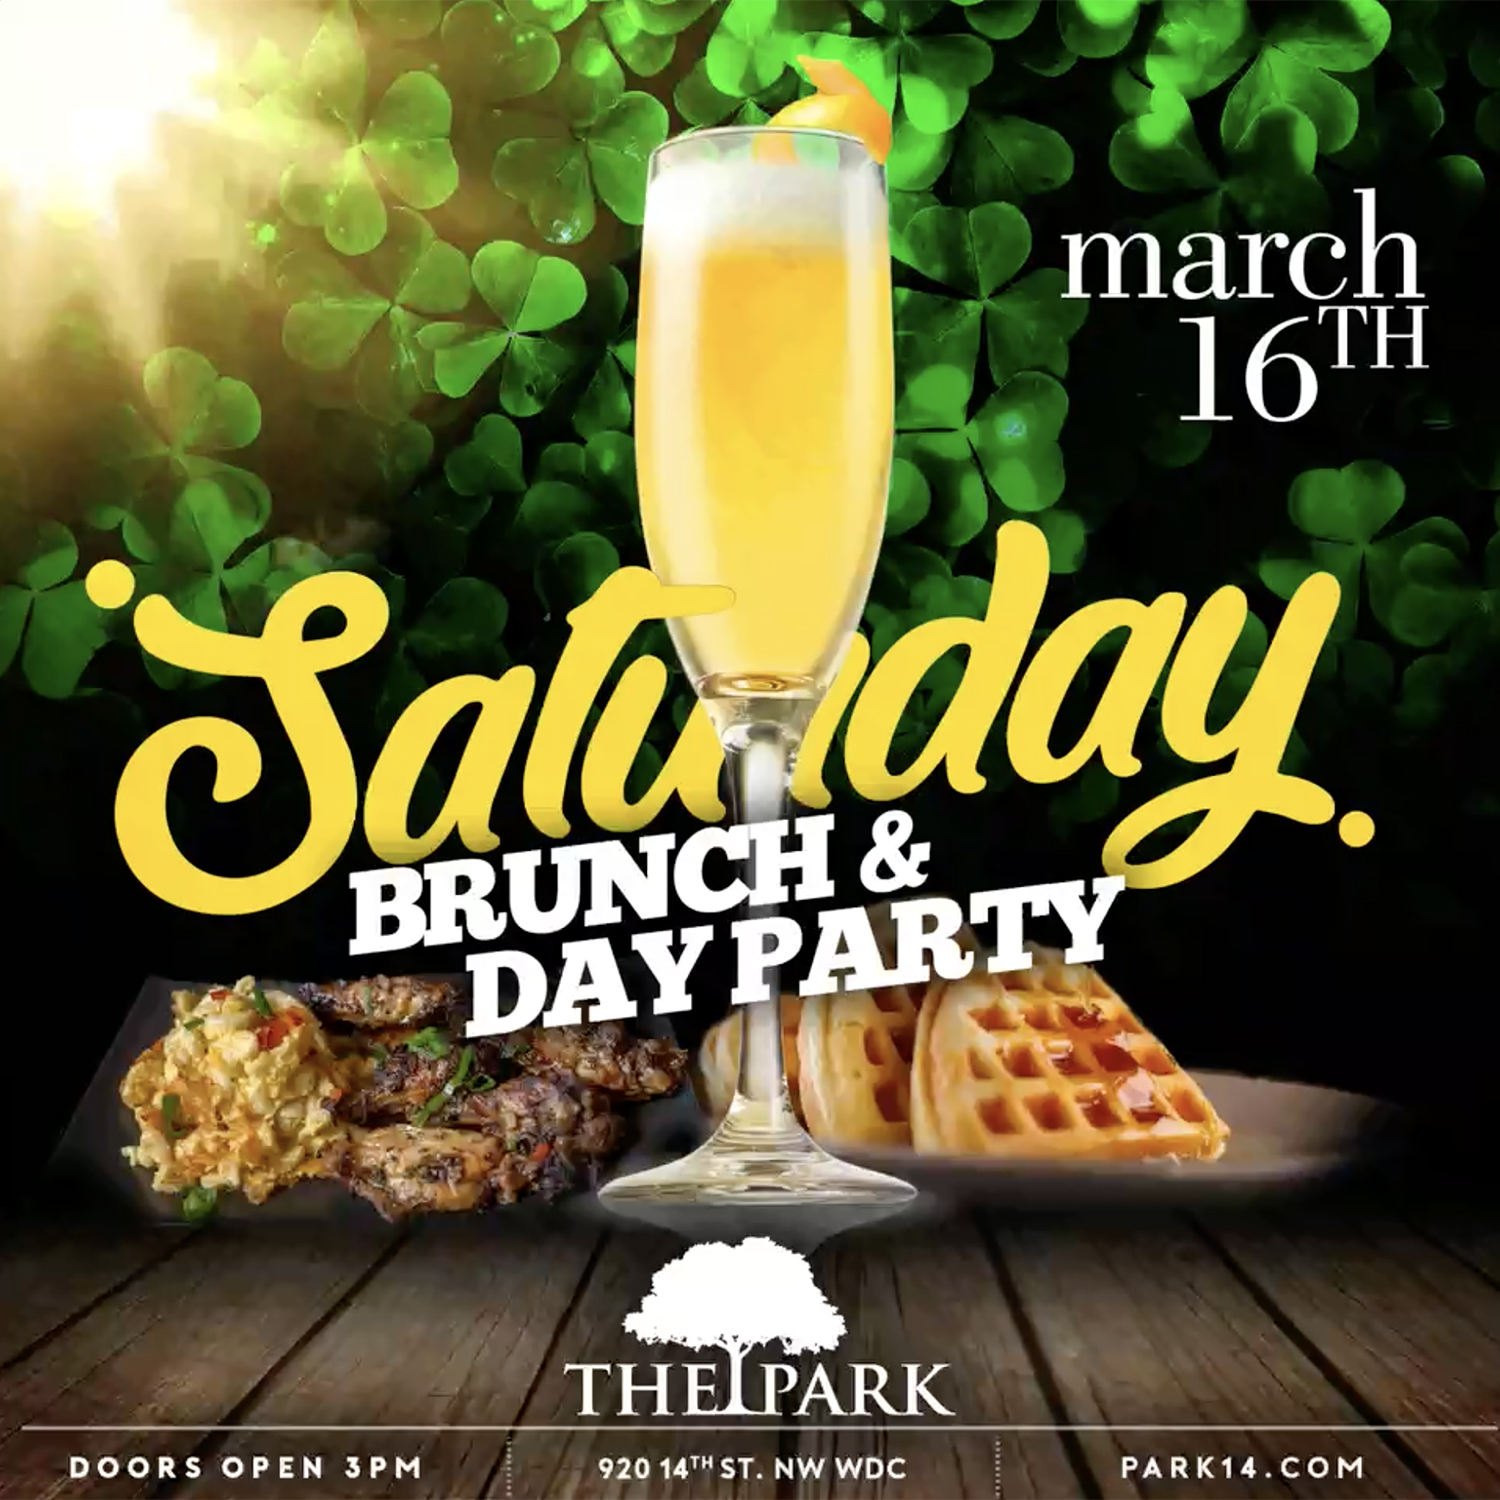 Brunch and Day Party Flyer.jpg